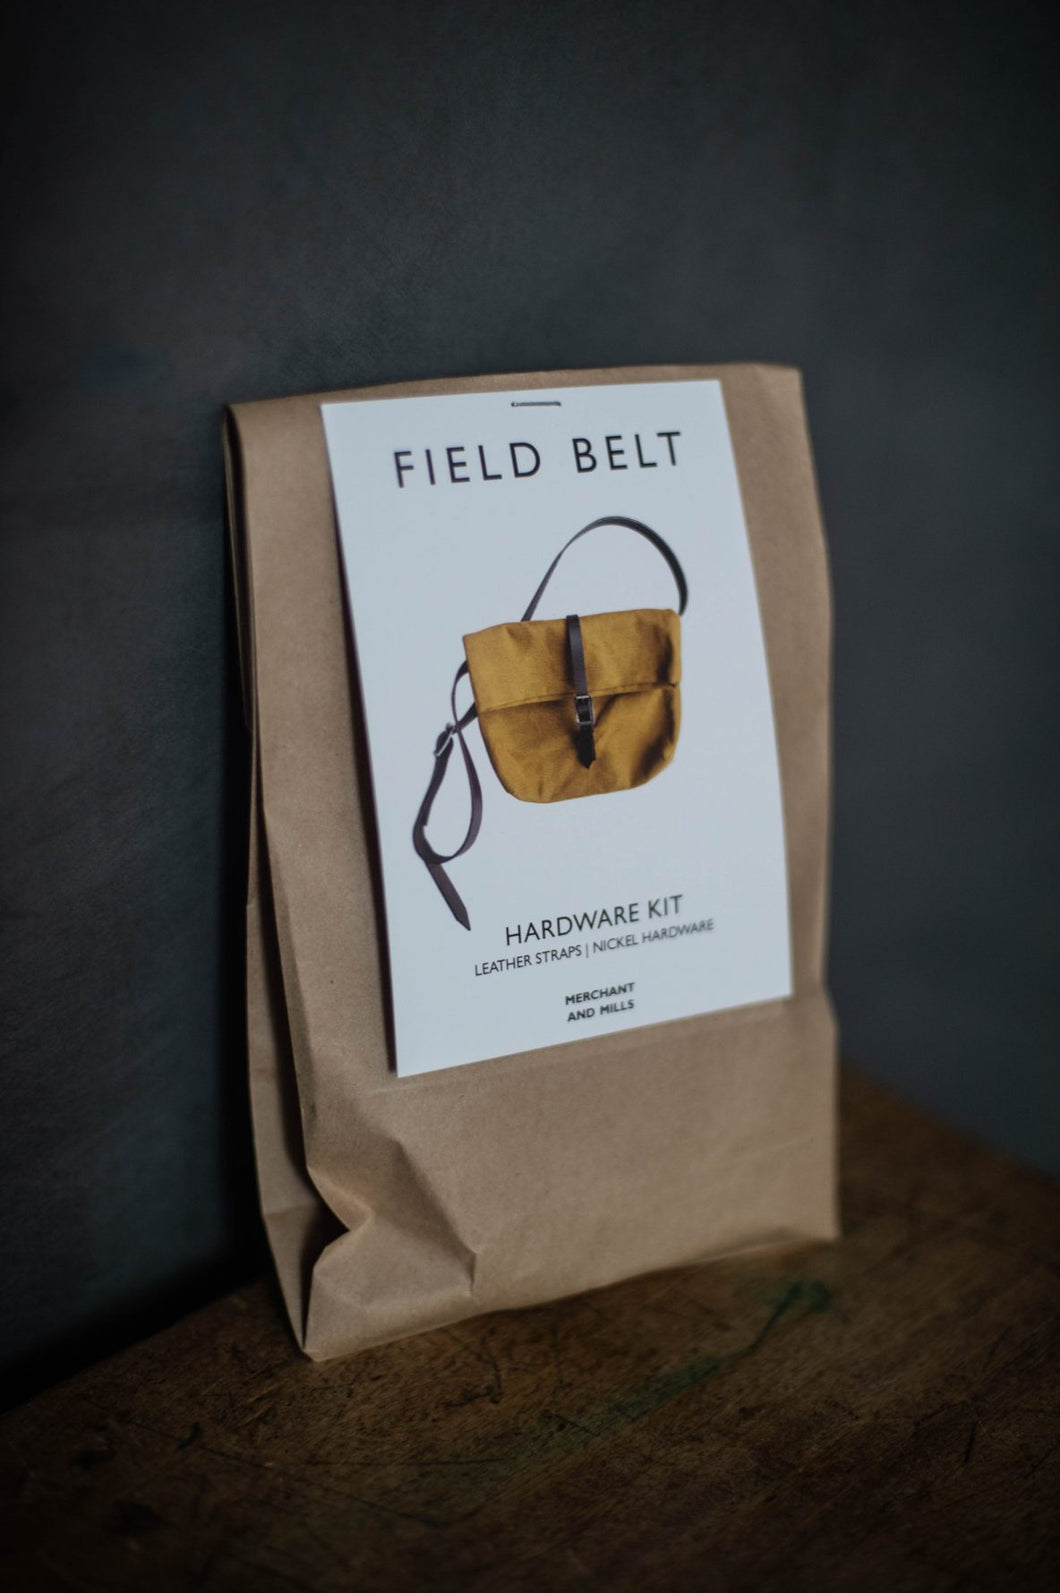 Field Belt Bag Hardware Kit